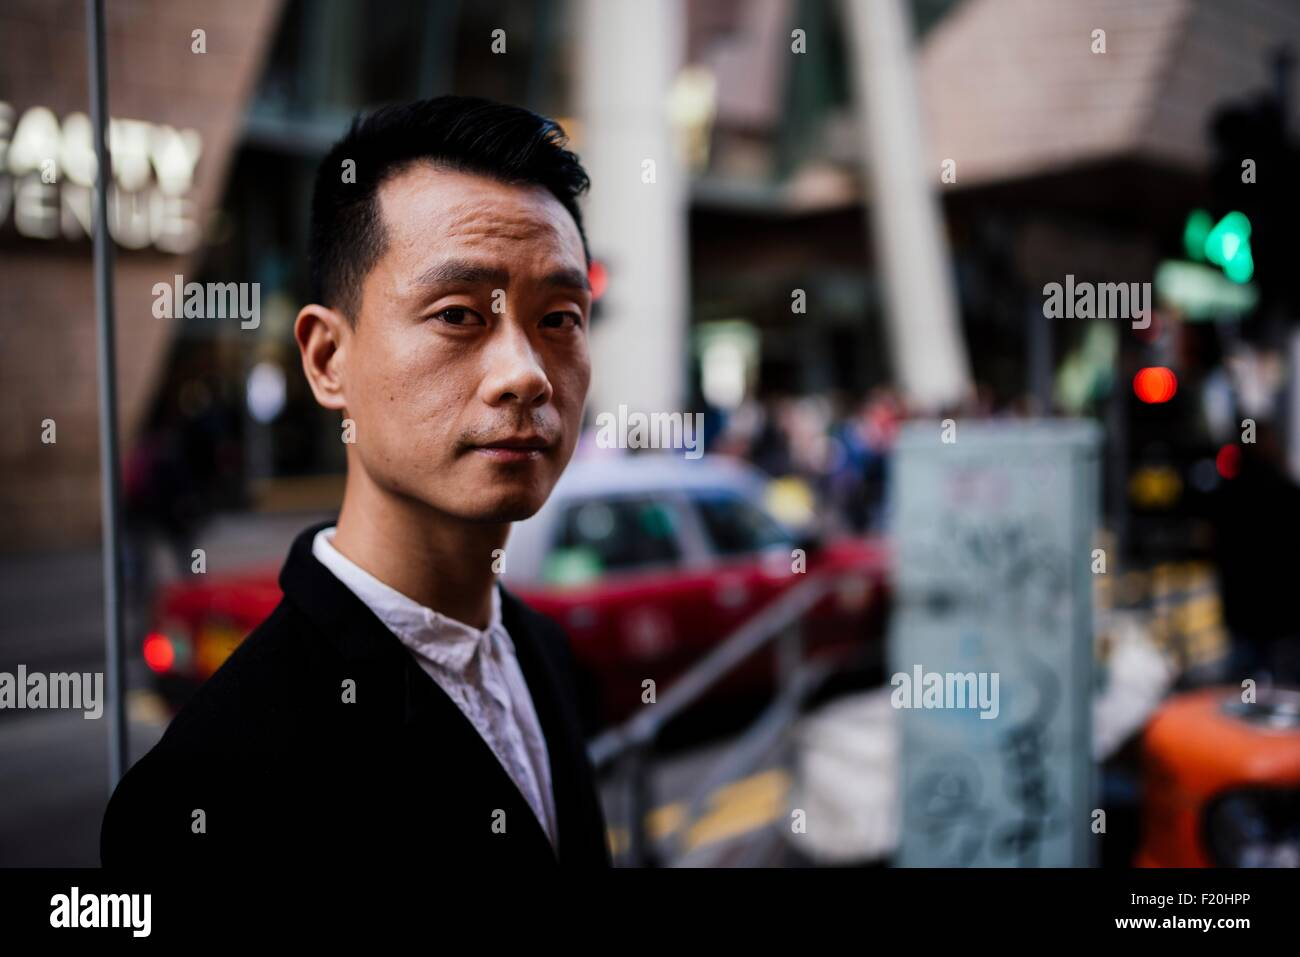 Portrait of mid adult man wearing shirt and suit jacket, looking at camera - Stock Image